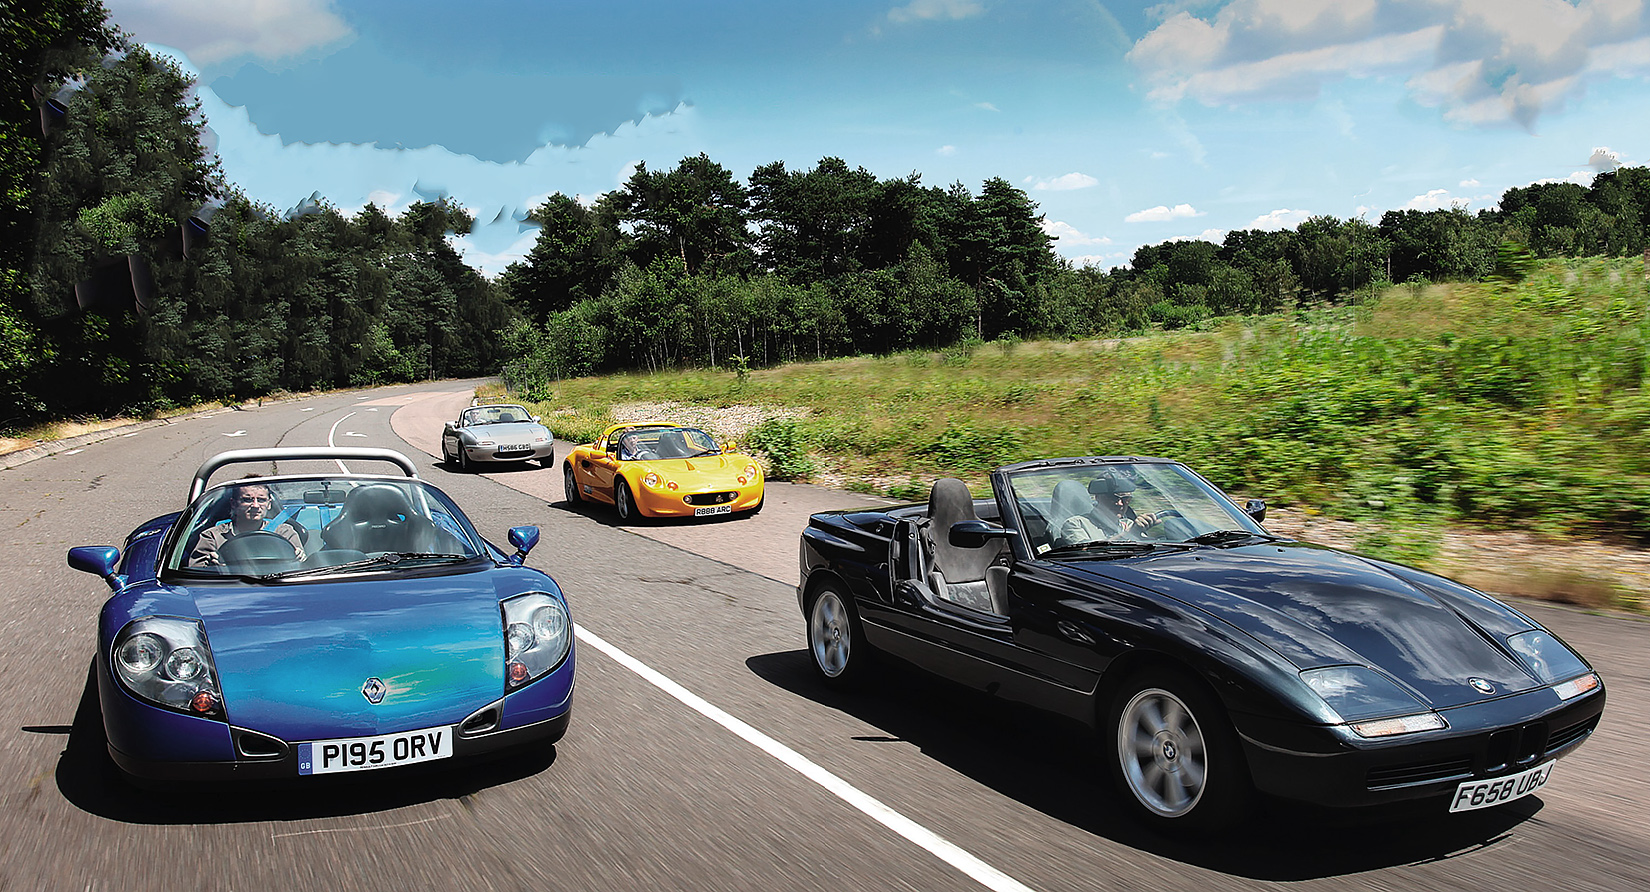 Mazda Mx 5 Vs Lotus Elise Renault Sport Spider And Bmw Z1